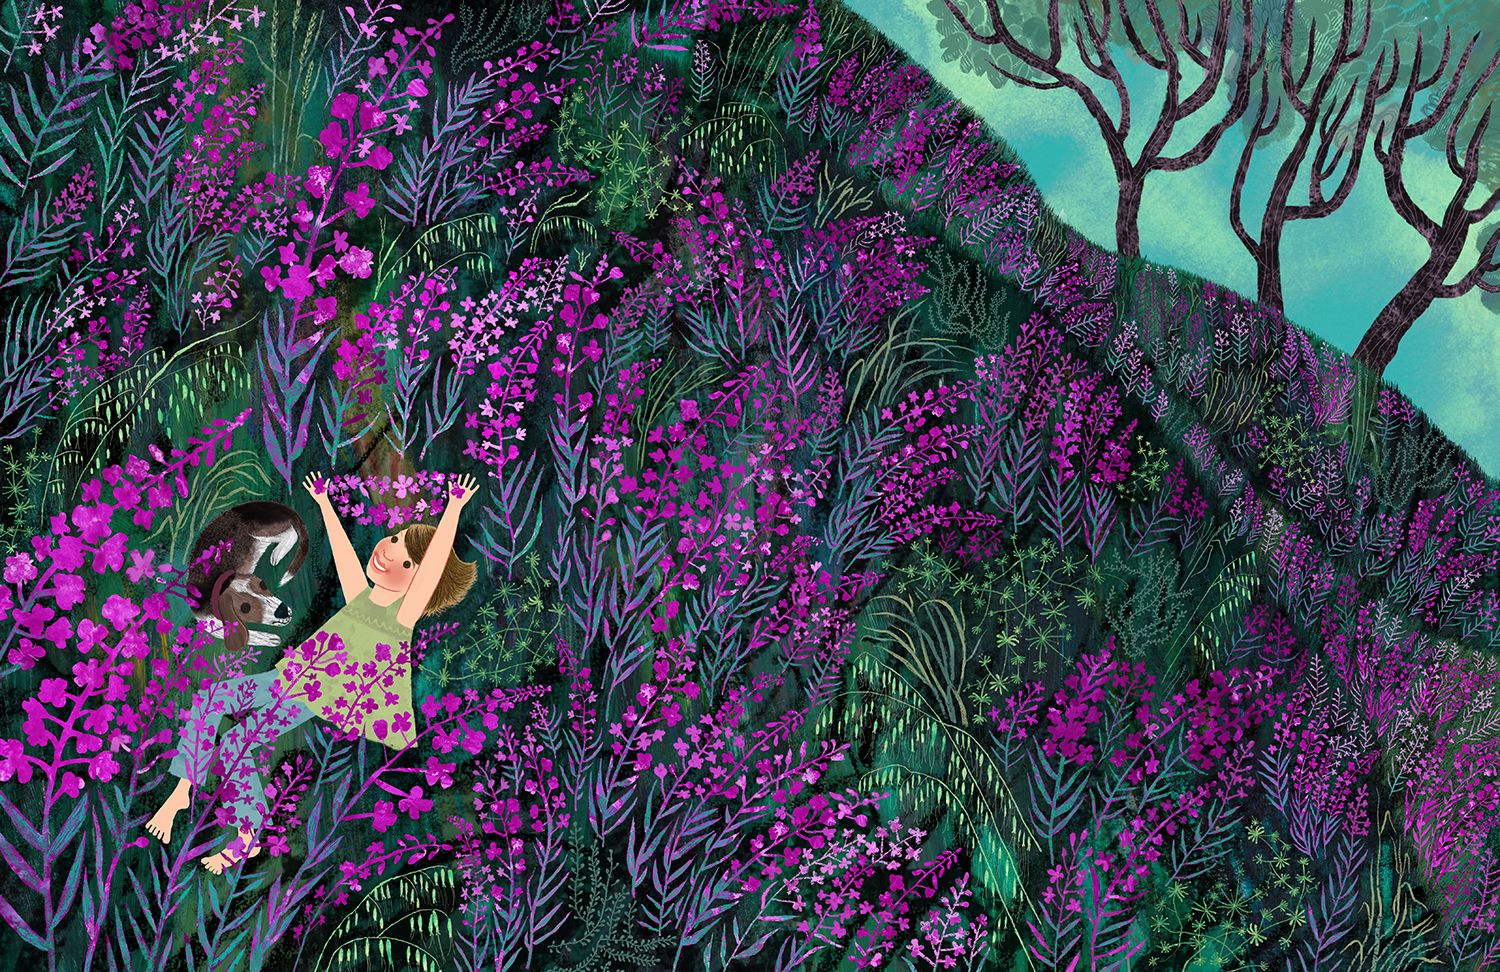 CarolynFisher_illustration_picturebook_WeedsFindaWay_15RGB_1500pxW.jpg